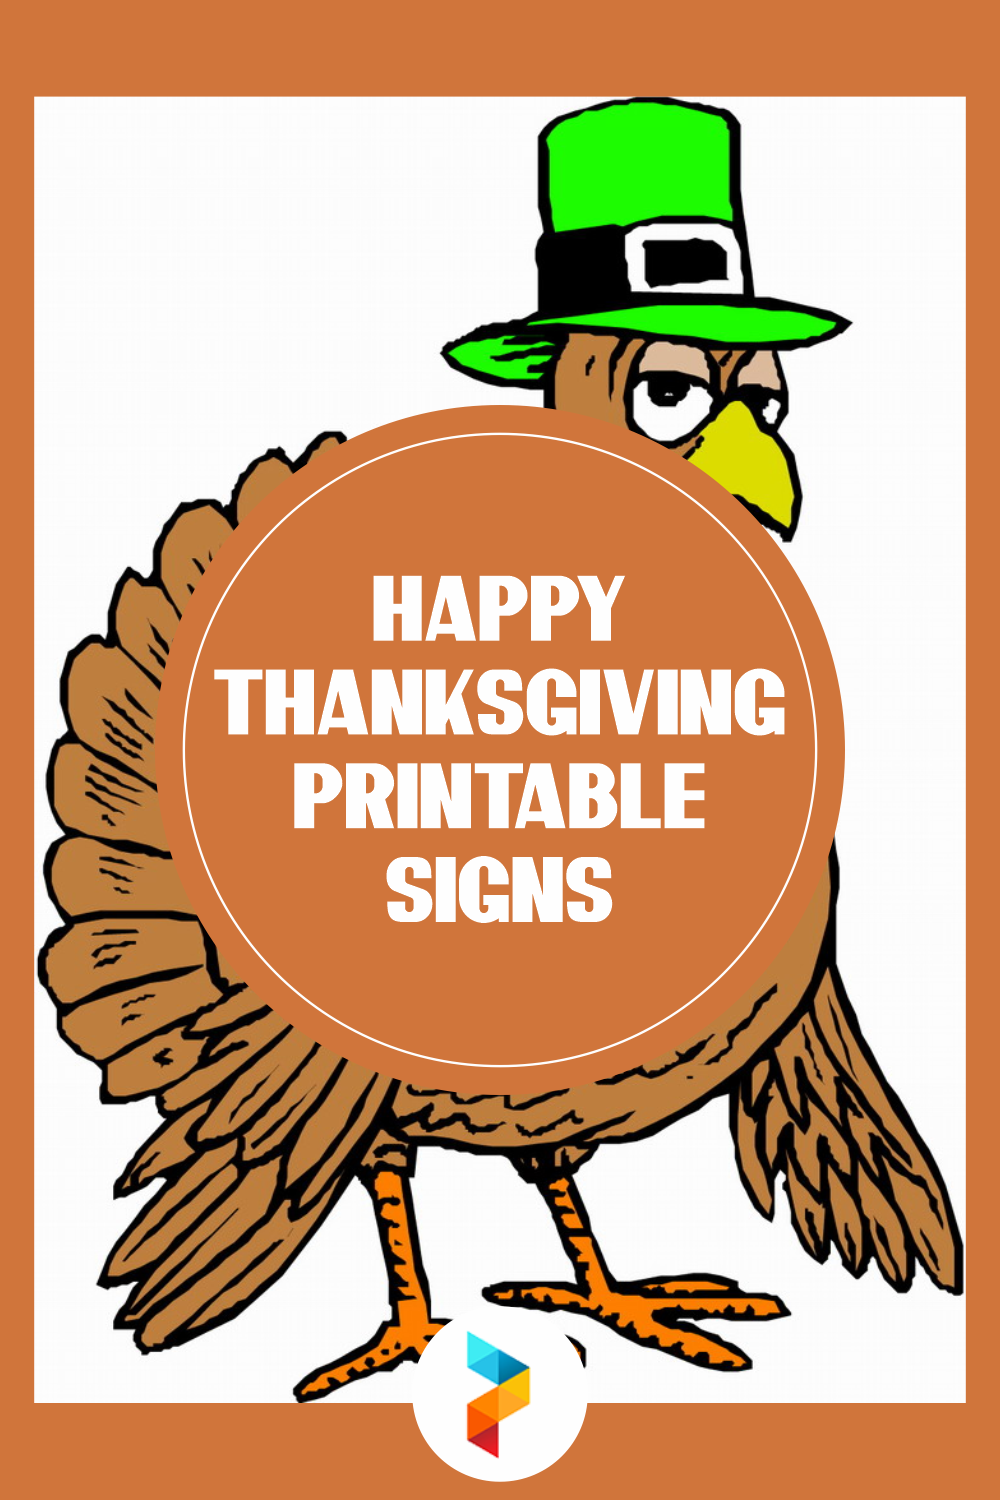 Happy Thanksgiving Printable Signs